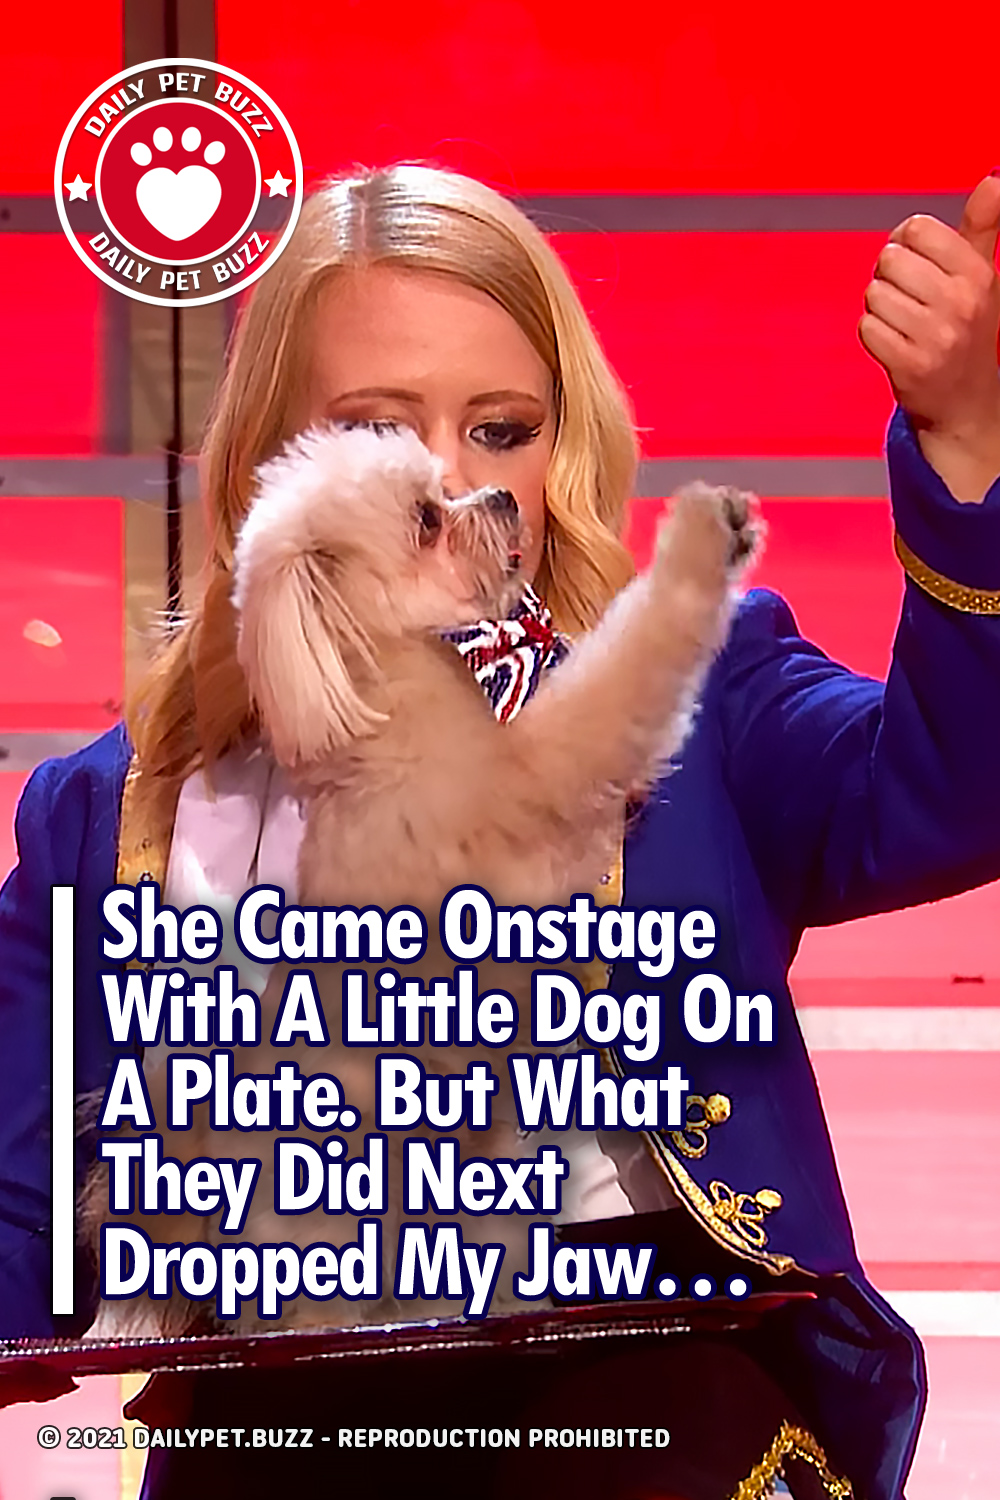 She Came Onstage With A Little Dog On A Plate. But What They Did Next Dropped My Jaw...